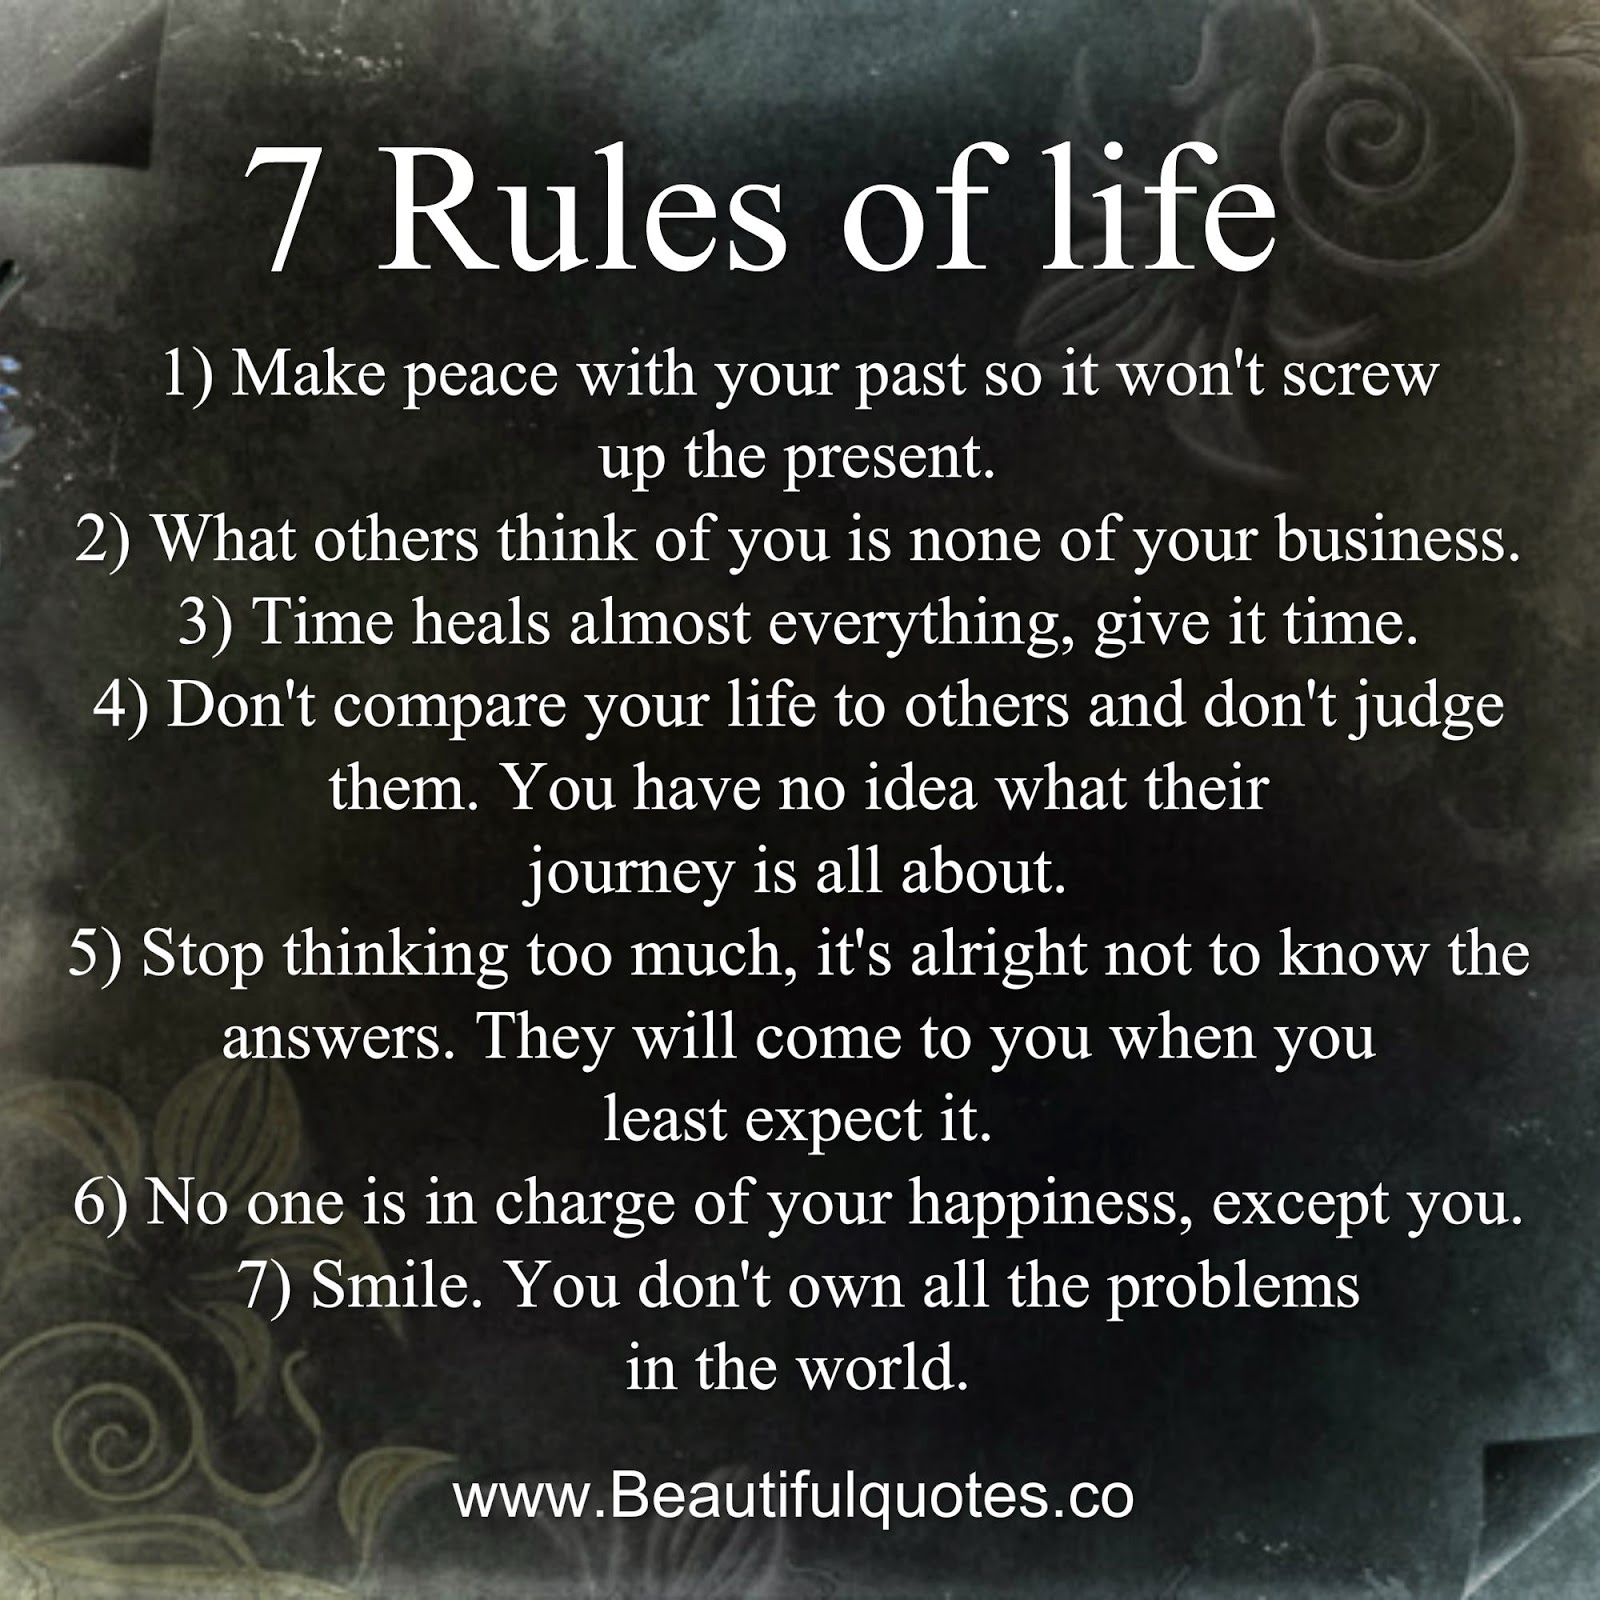 7 Rules Of Life Quote Inspiration Beautiful Quotes 7 Rules Of Life